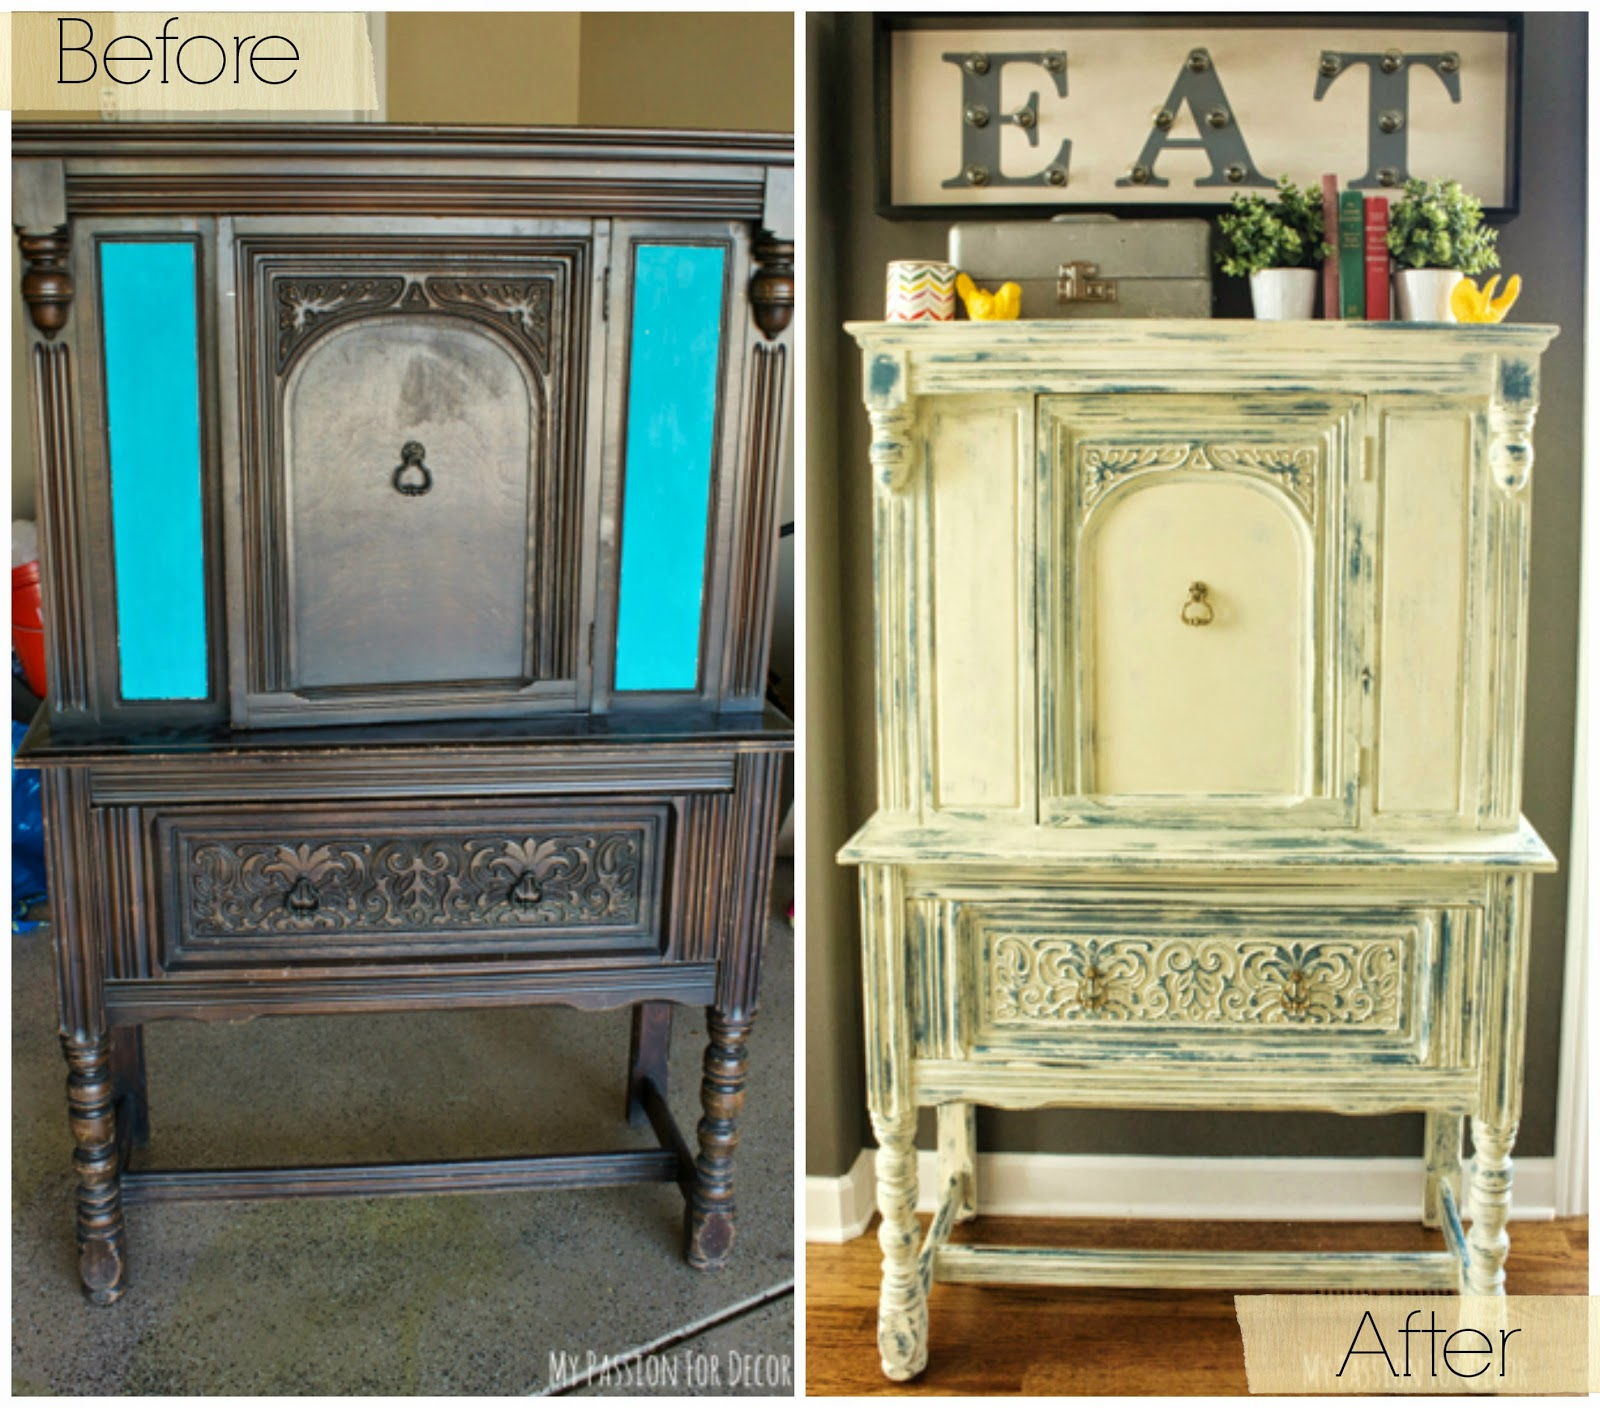 Chalk Paint Used On Kitchen Cabinets: My Passion For Decor: Cabinet Makeover Using Chalk Paint